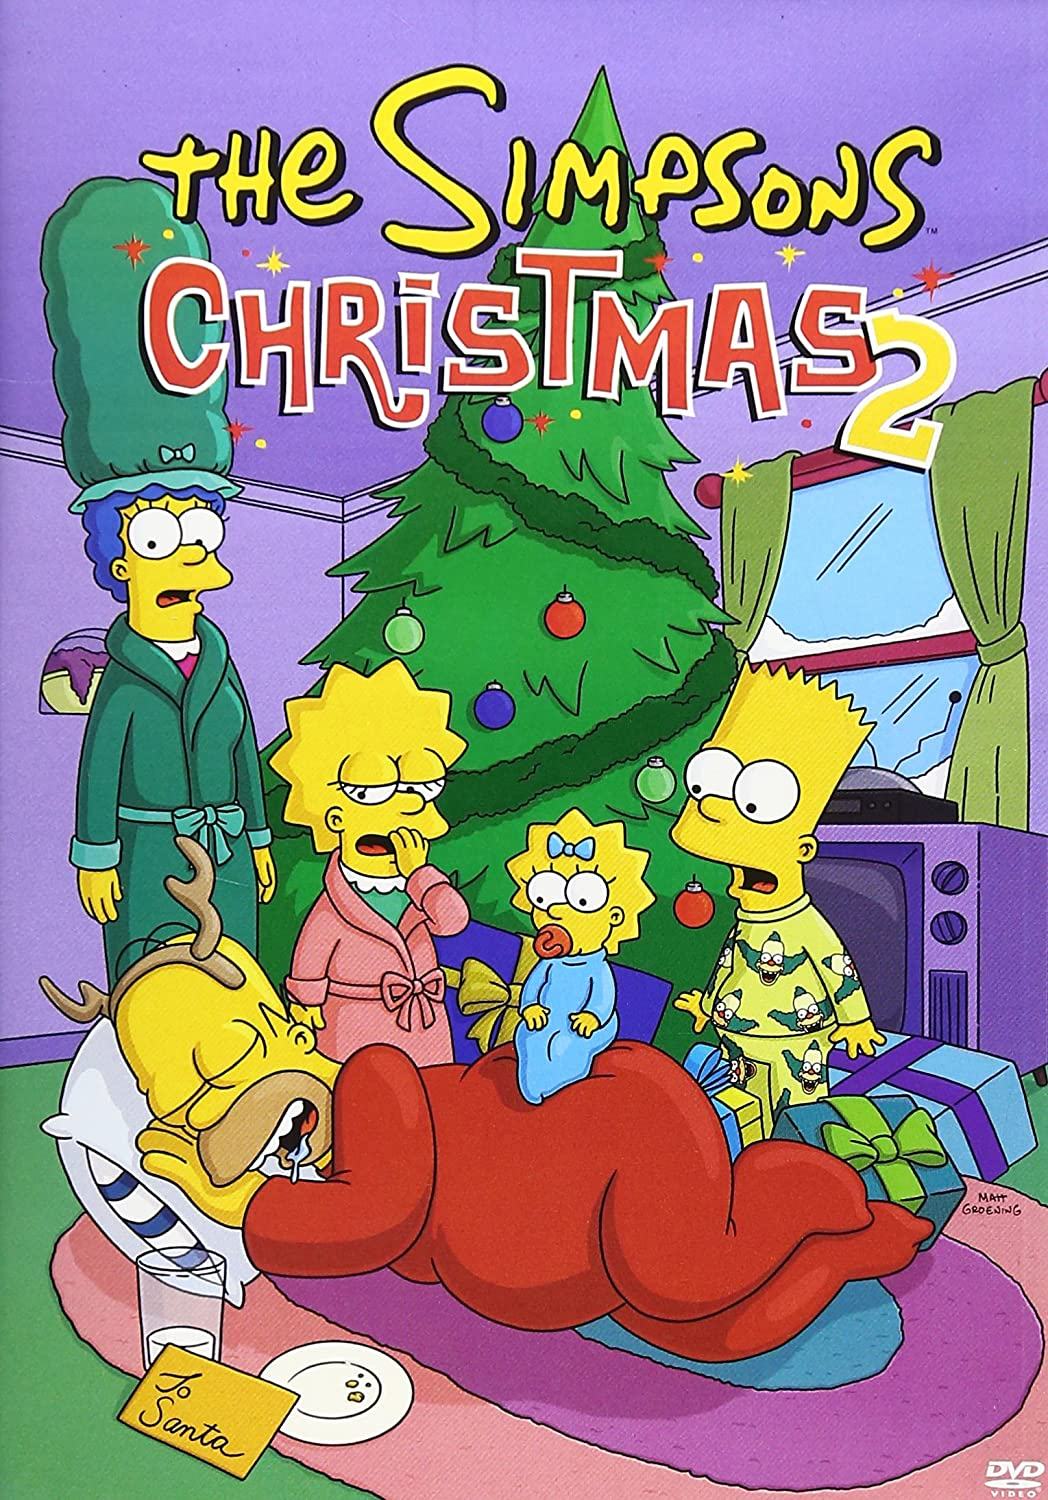 Amazon Com The Simpsons Christmas 2 Dan Castellaneta Nancy Cartwright Julie Kavner Yeardley Smith Harry Shearer Hank Azaria Pamela Hayden Tress Macneille Karl Wiedergott Maggie Roswell Russi Taylor Marcia Wallace James L